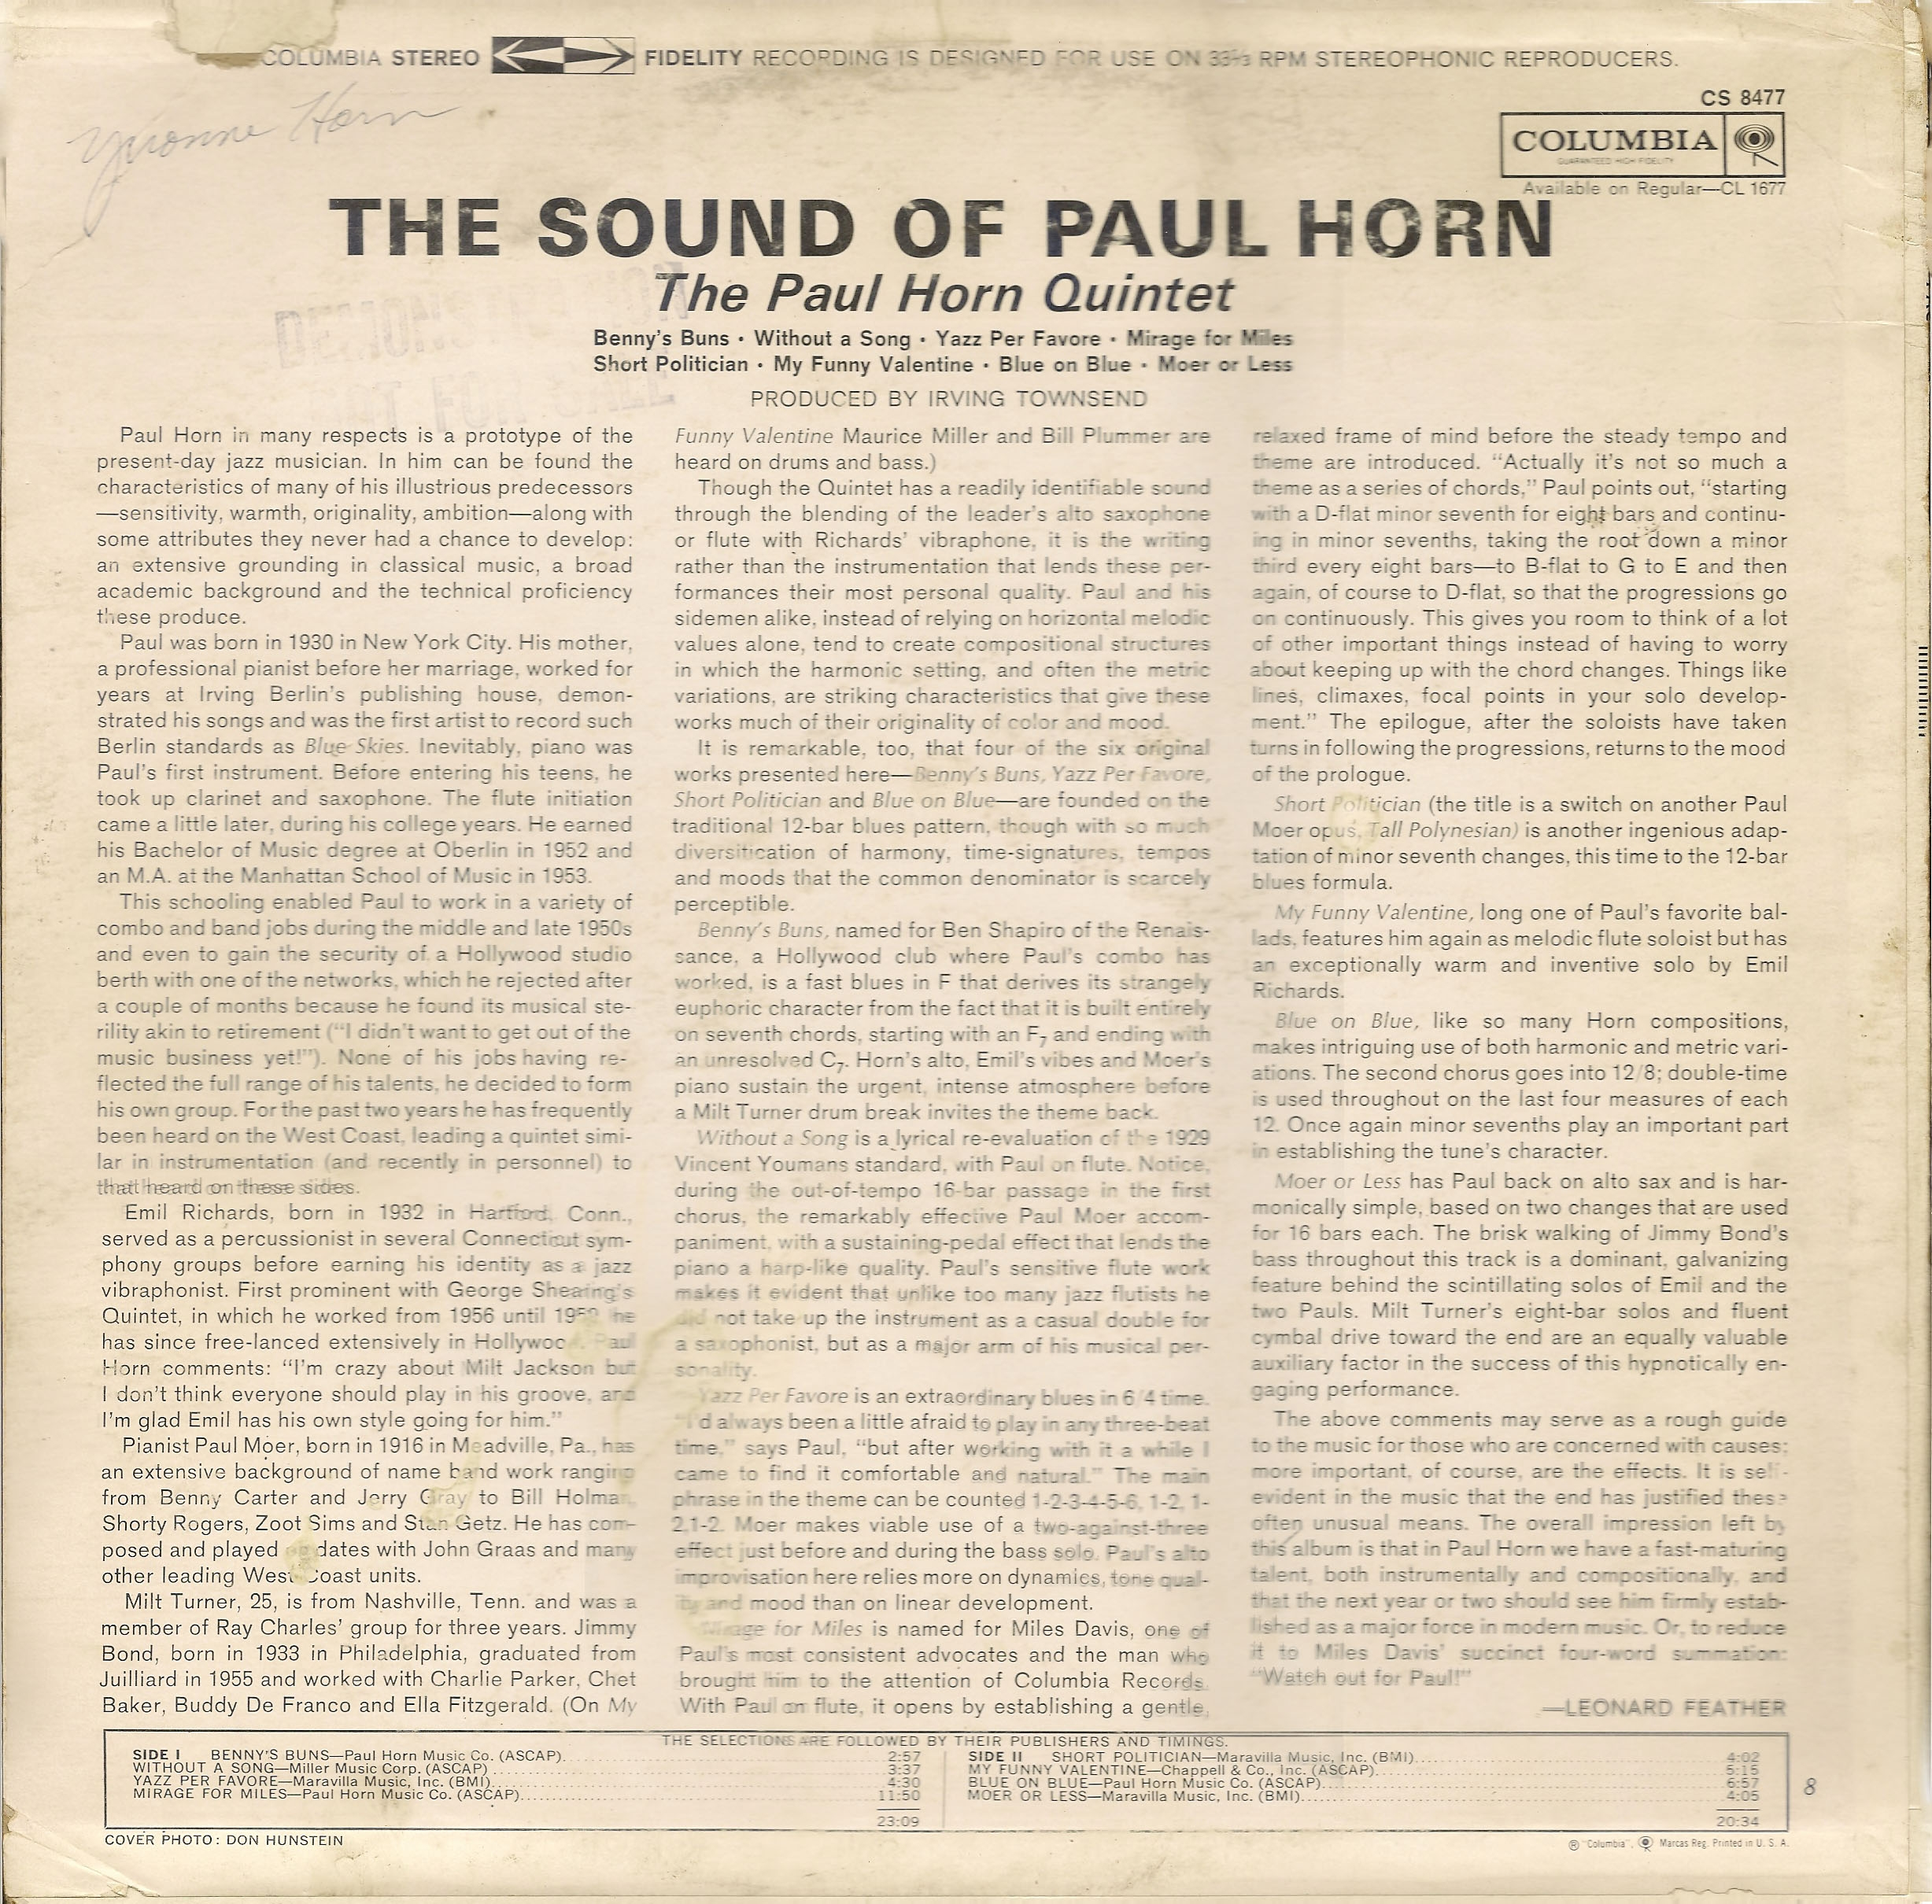 The Sound of Paul Horn - Cover Image